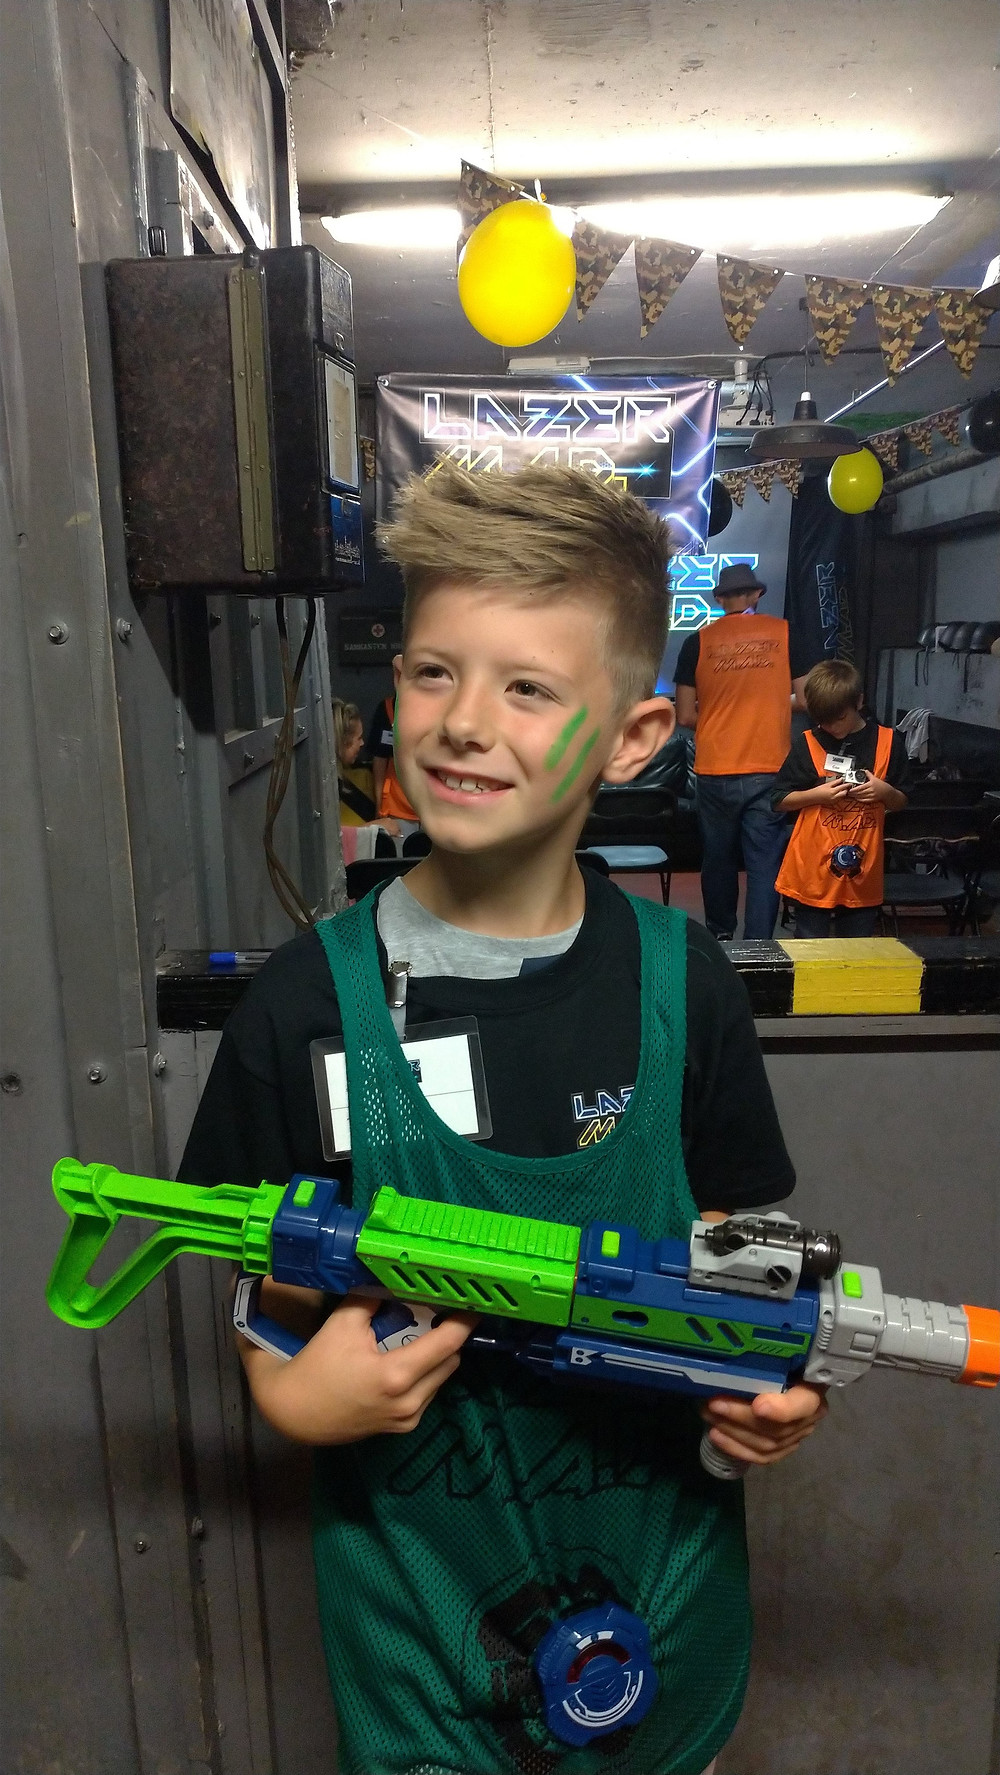 Daddy & Dad - Lyall looking handsome with his Lazer M.A.D blaster!